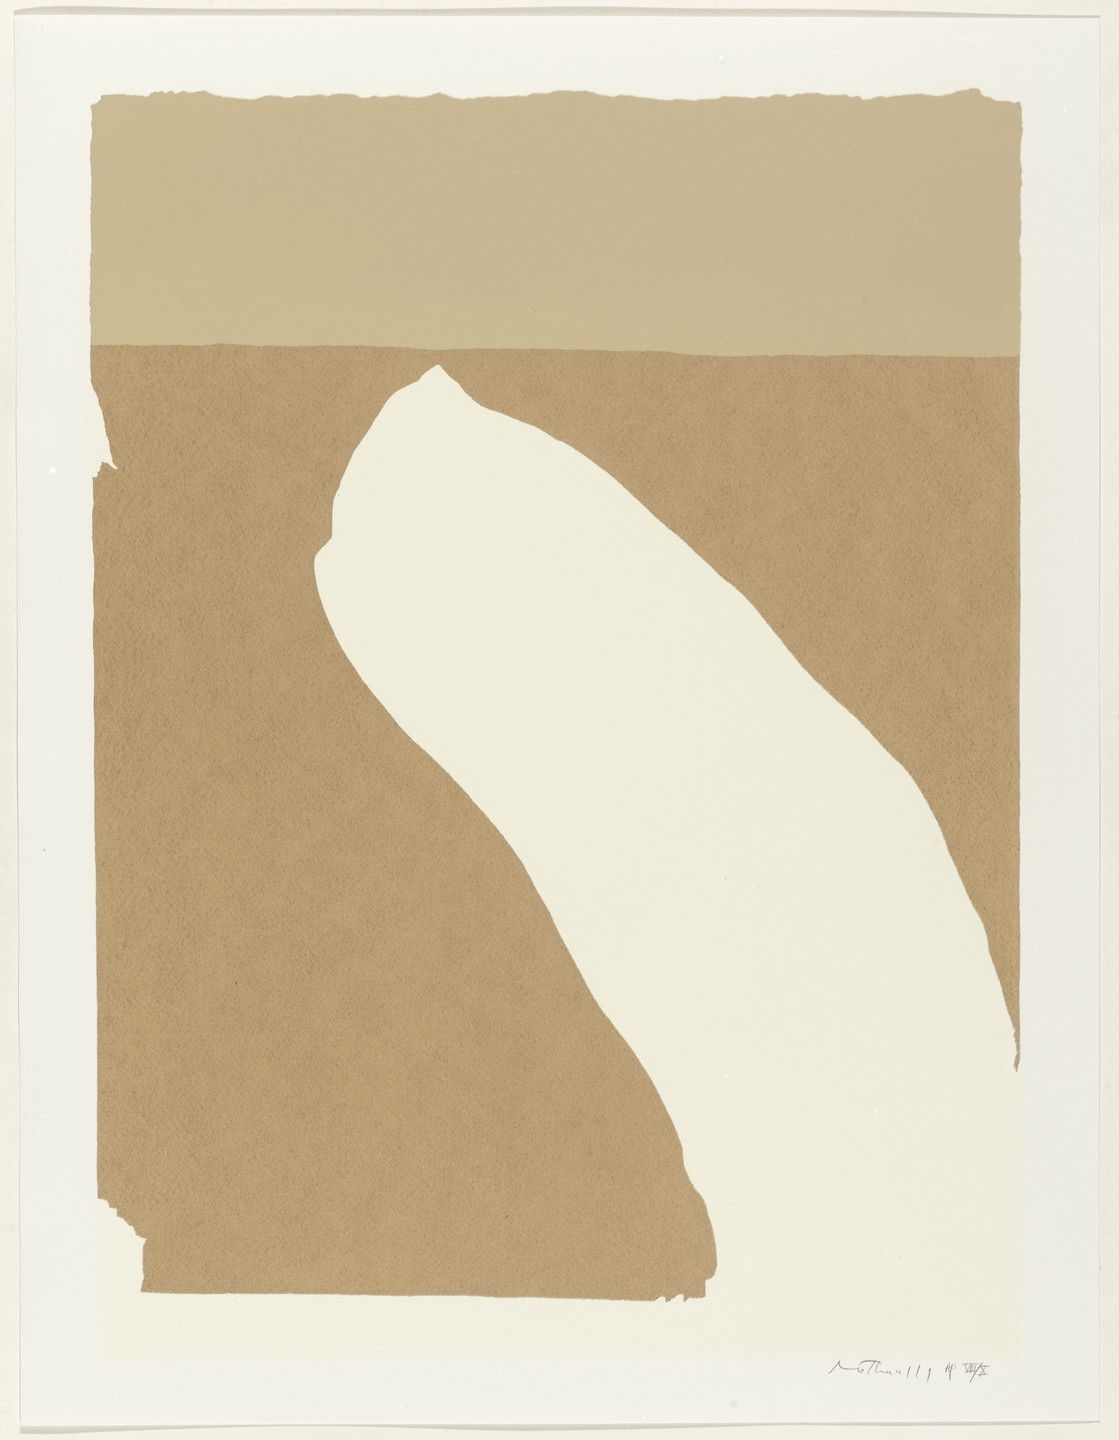 Robert Motherwell. Untitled from Flight. 1970, published 1971